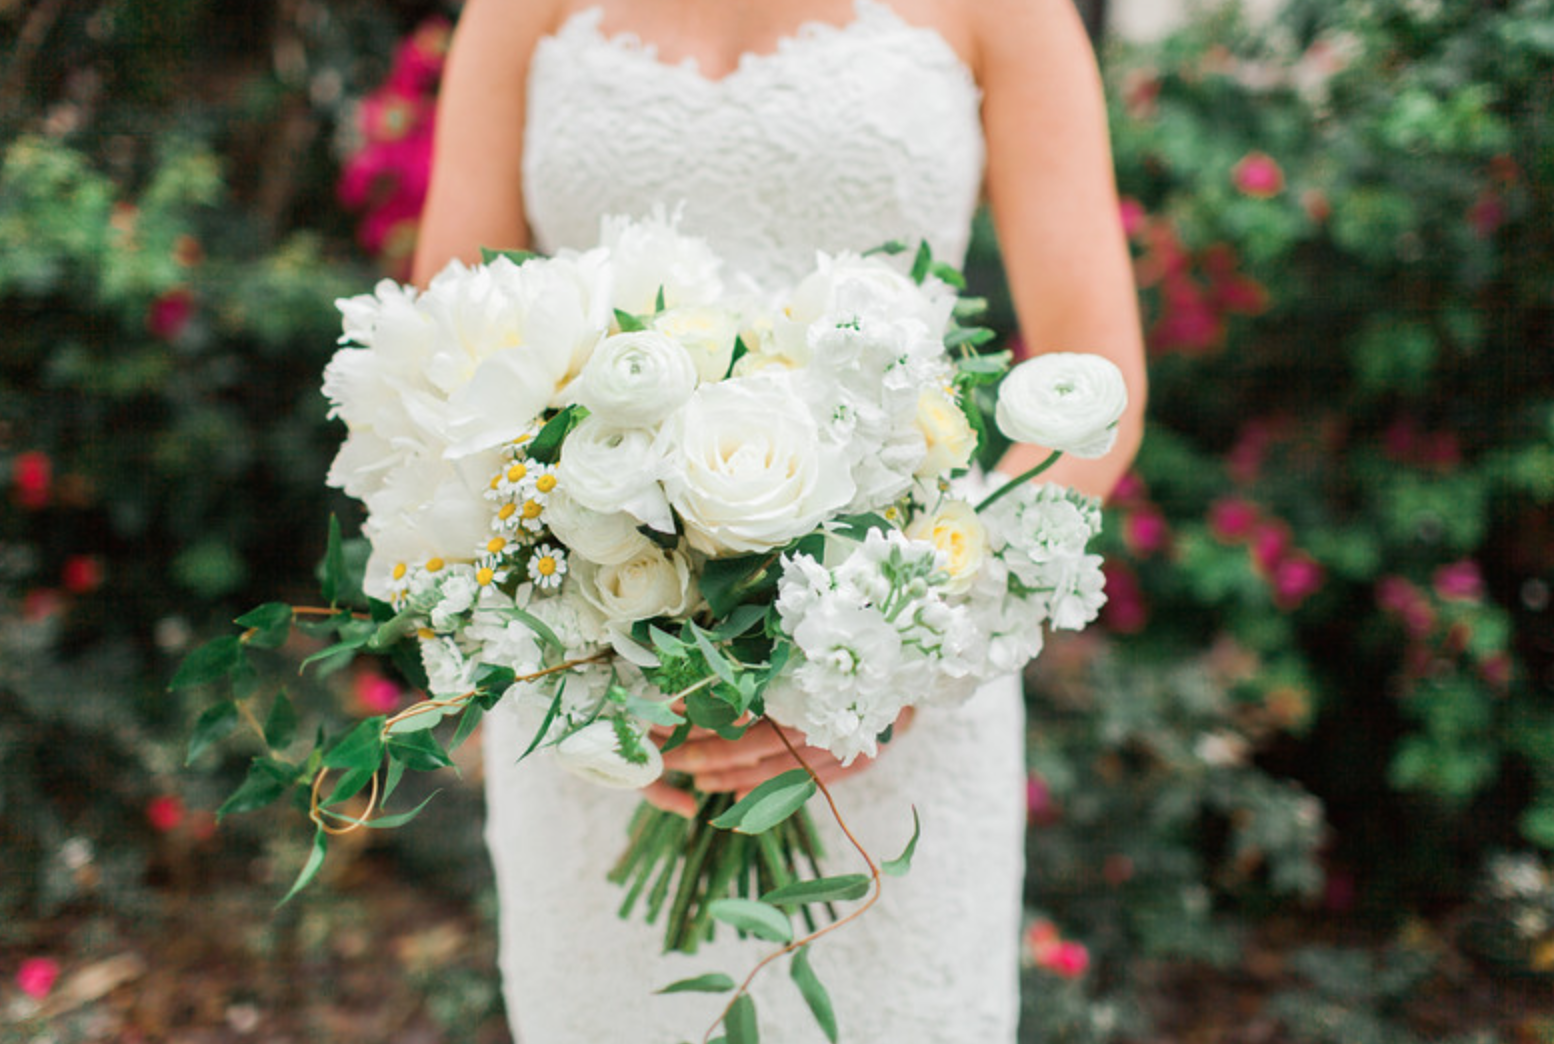 Loose Bridal Bouquet Of White Peonies White Stock White Roses Cream Roses White Lisianthus White Ran White Ranunculus Floral Wedding Cream Roses